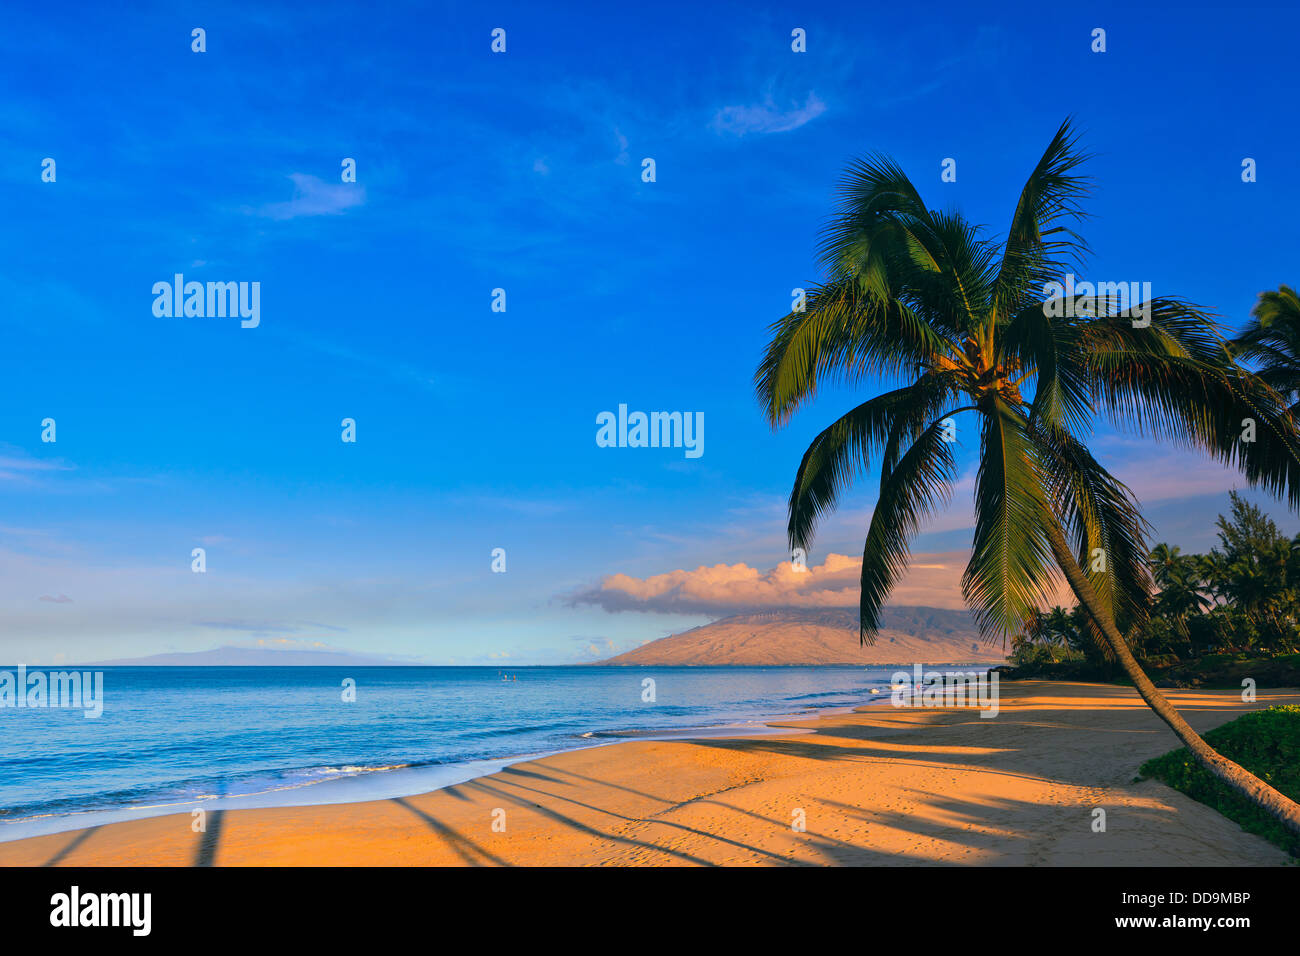 Sunrise at Kamaole Beach Park, Kihei, Maui, Hawaii - Stock Image